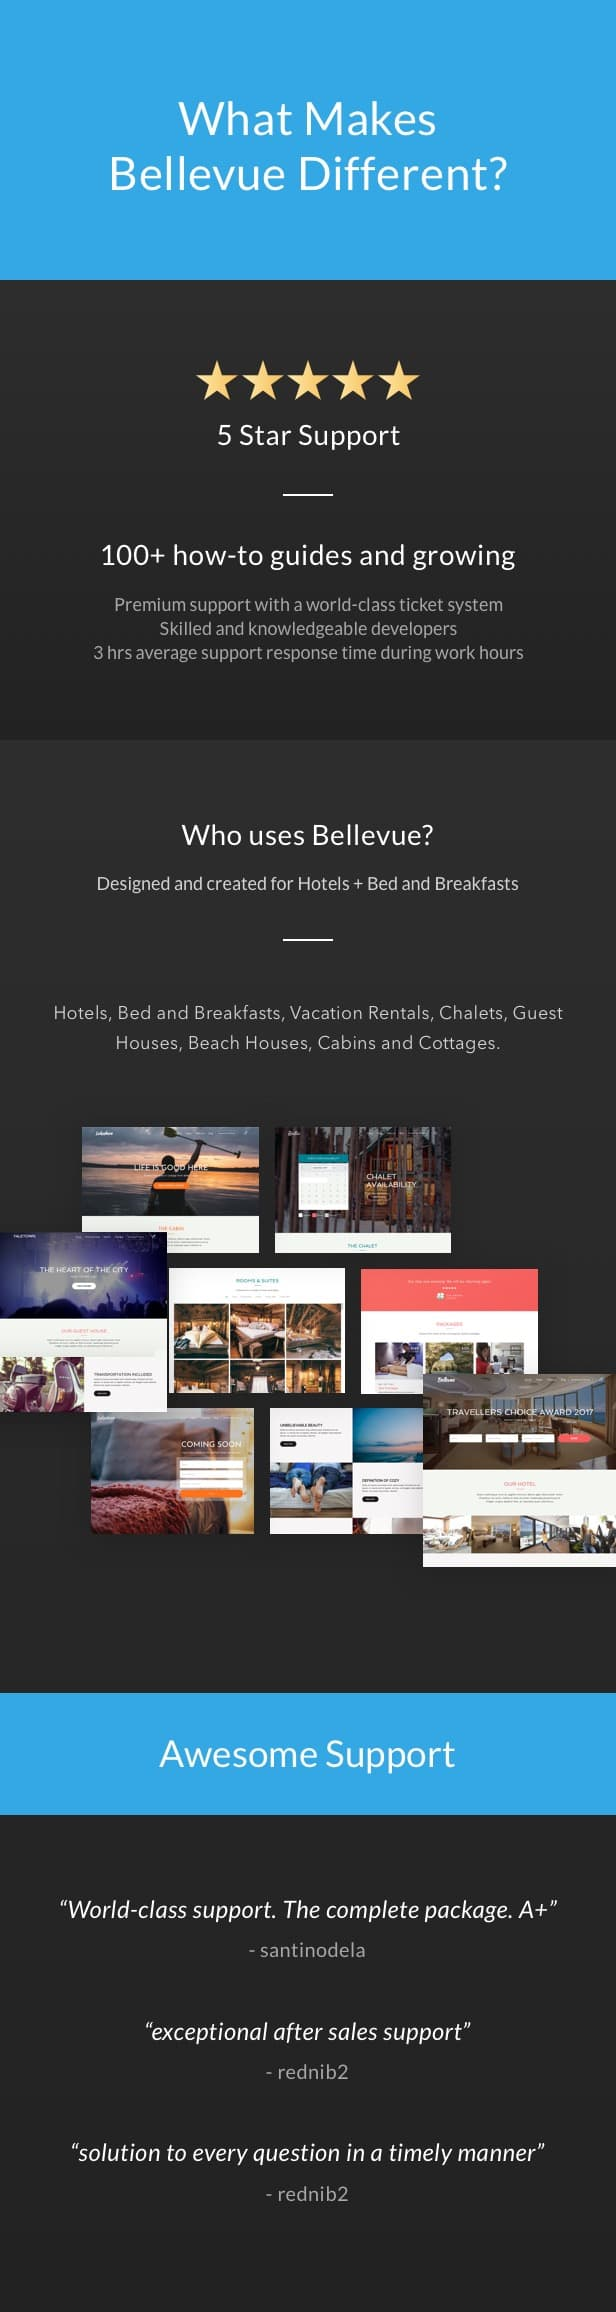 Hotel + Bed and Breakfast Booking Calendar Theme | Bellevue - 7